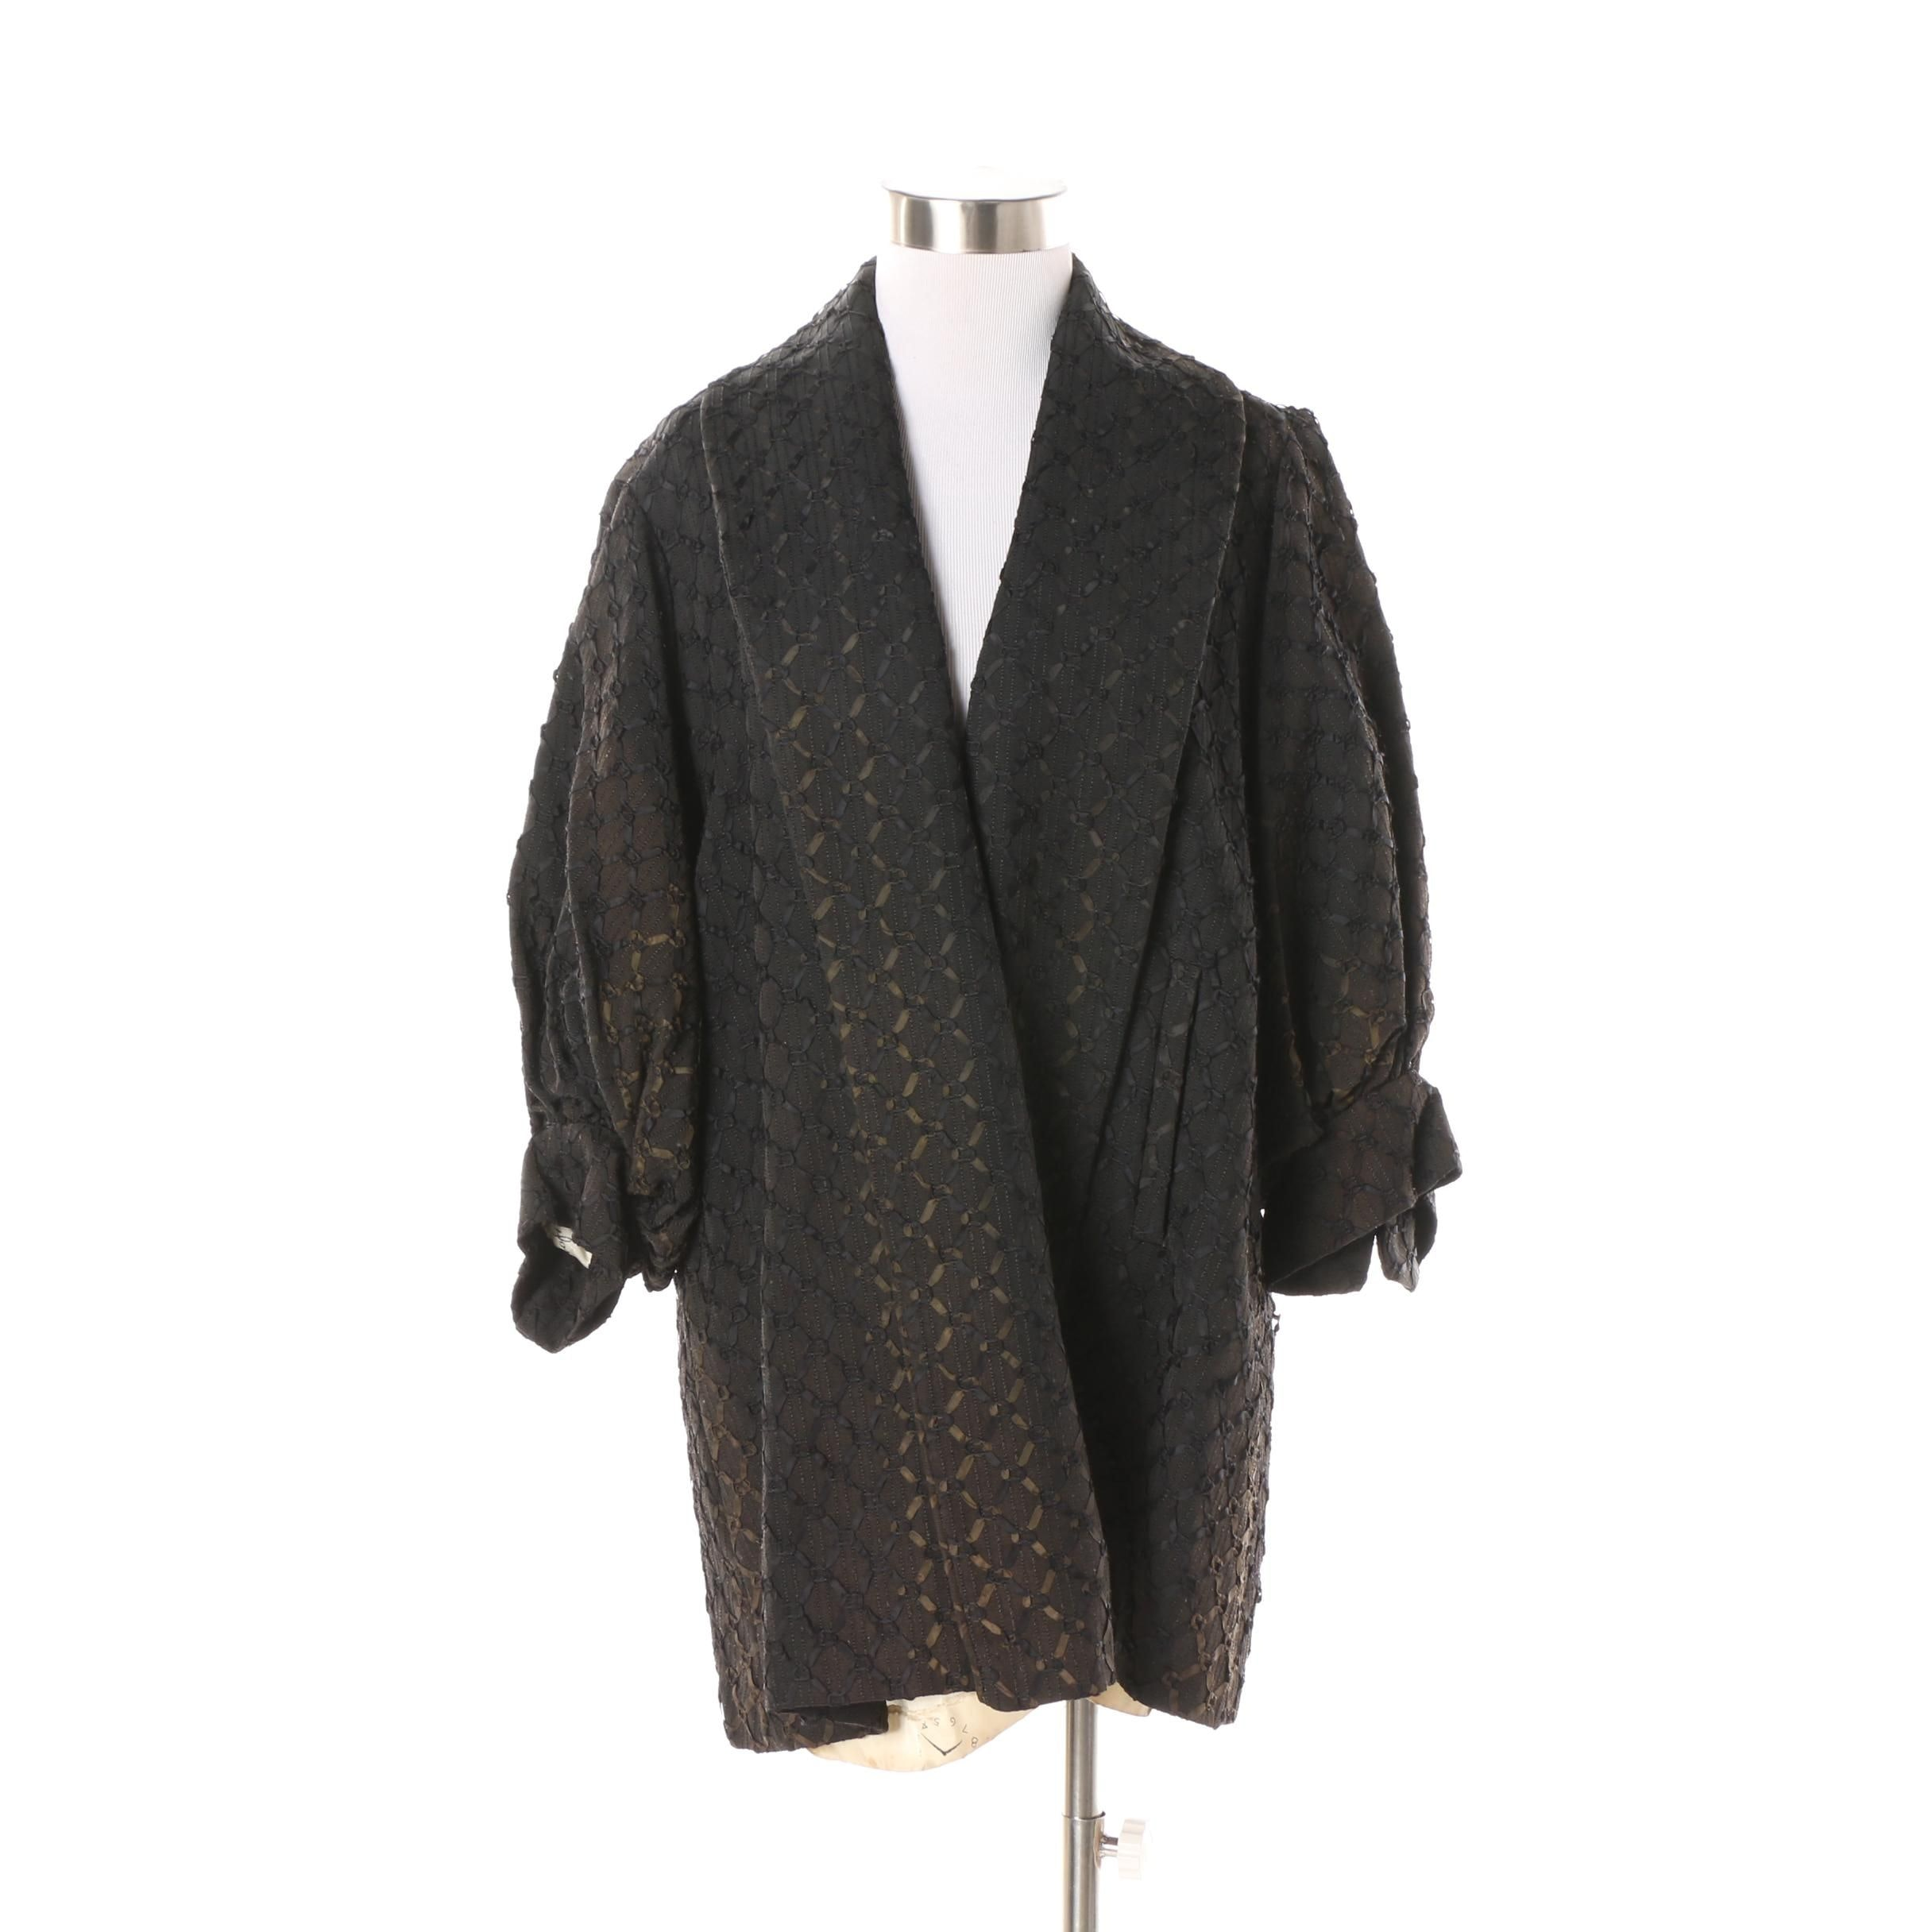 1940s Vintage Black Silk Swing Coat with Ribbon Lattice Detail